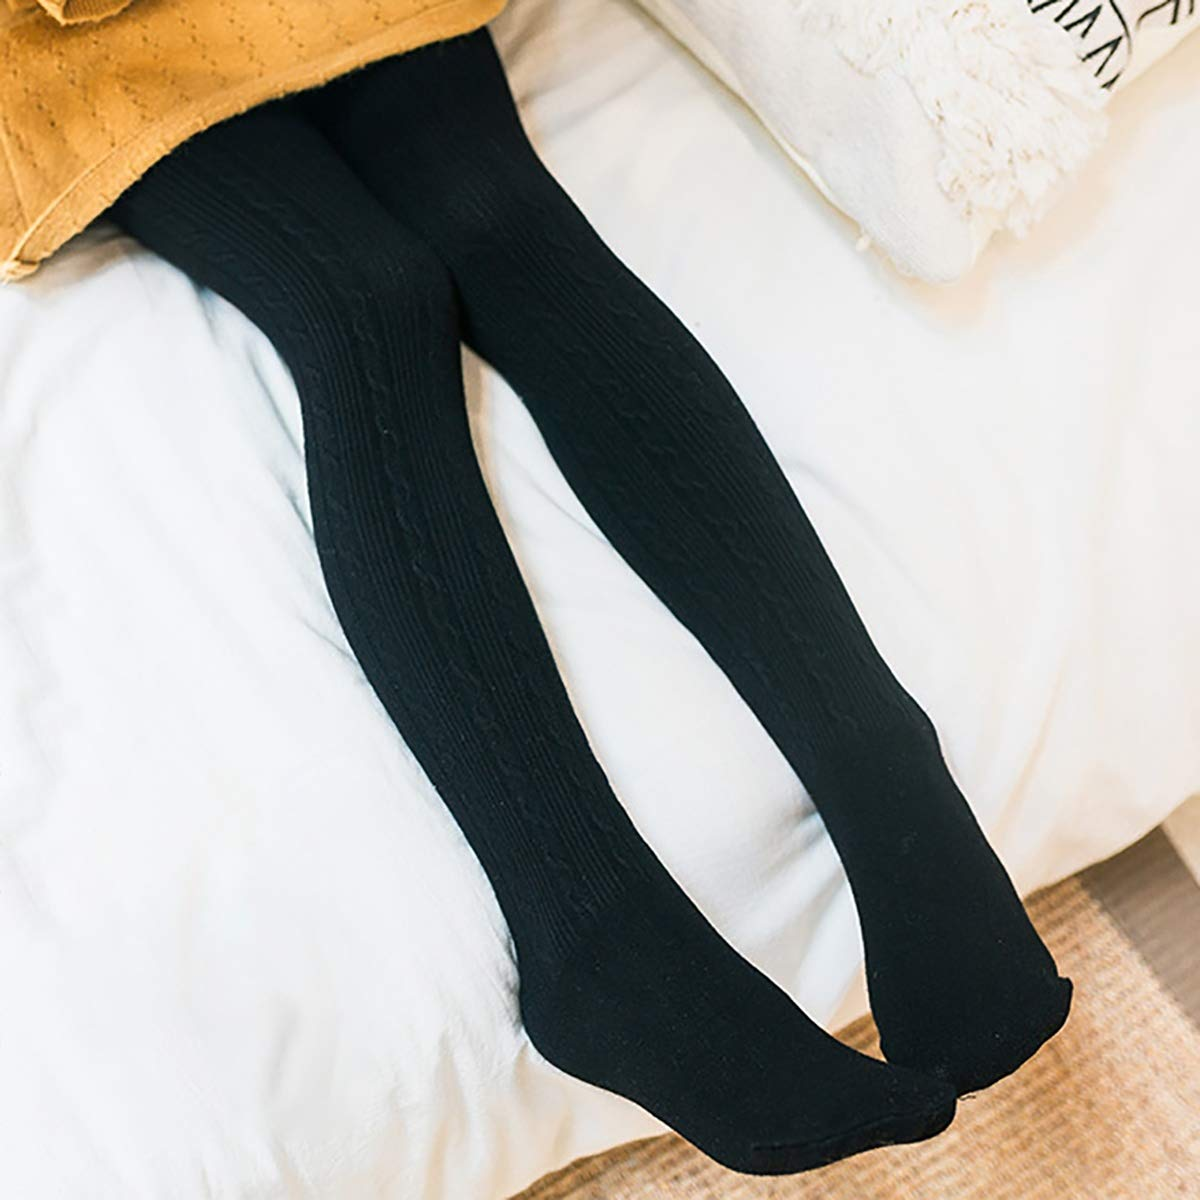 3//5PCS Stretch Knit Girl Tights,Multicolour Fashion Full Length Footed Kid Toddler Tight Legging Pantyhose